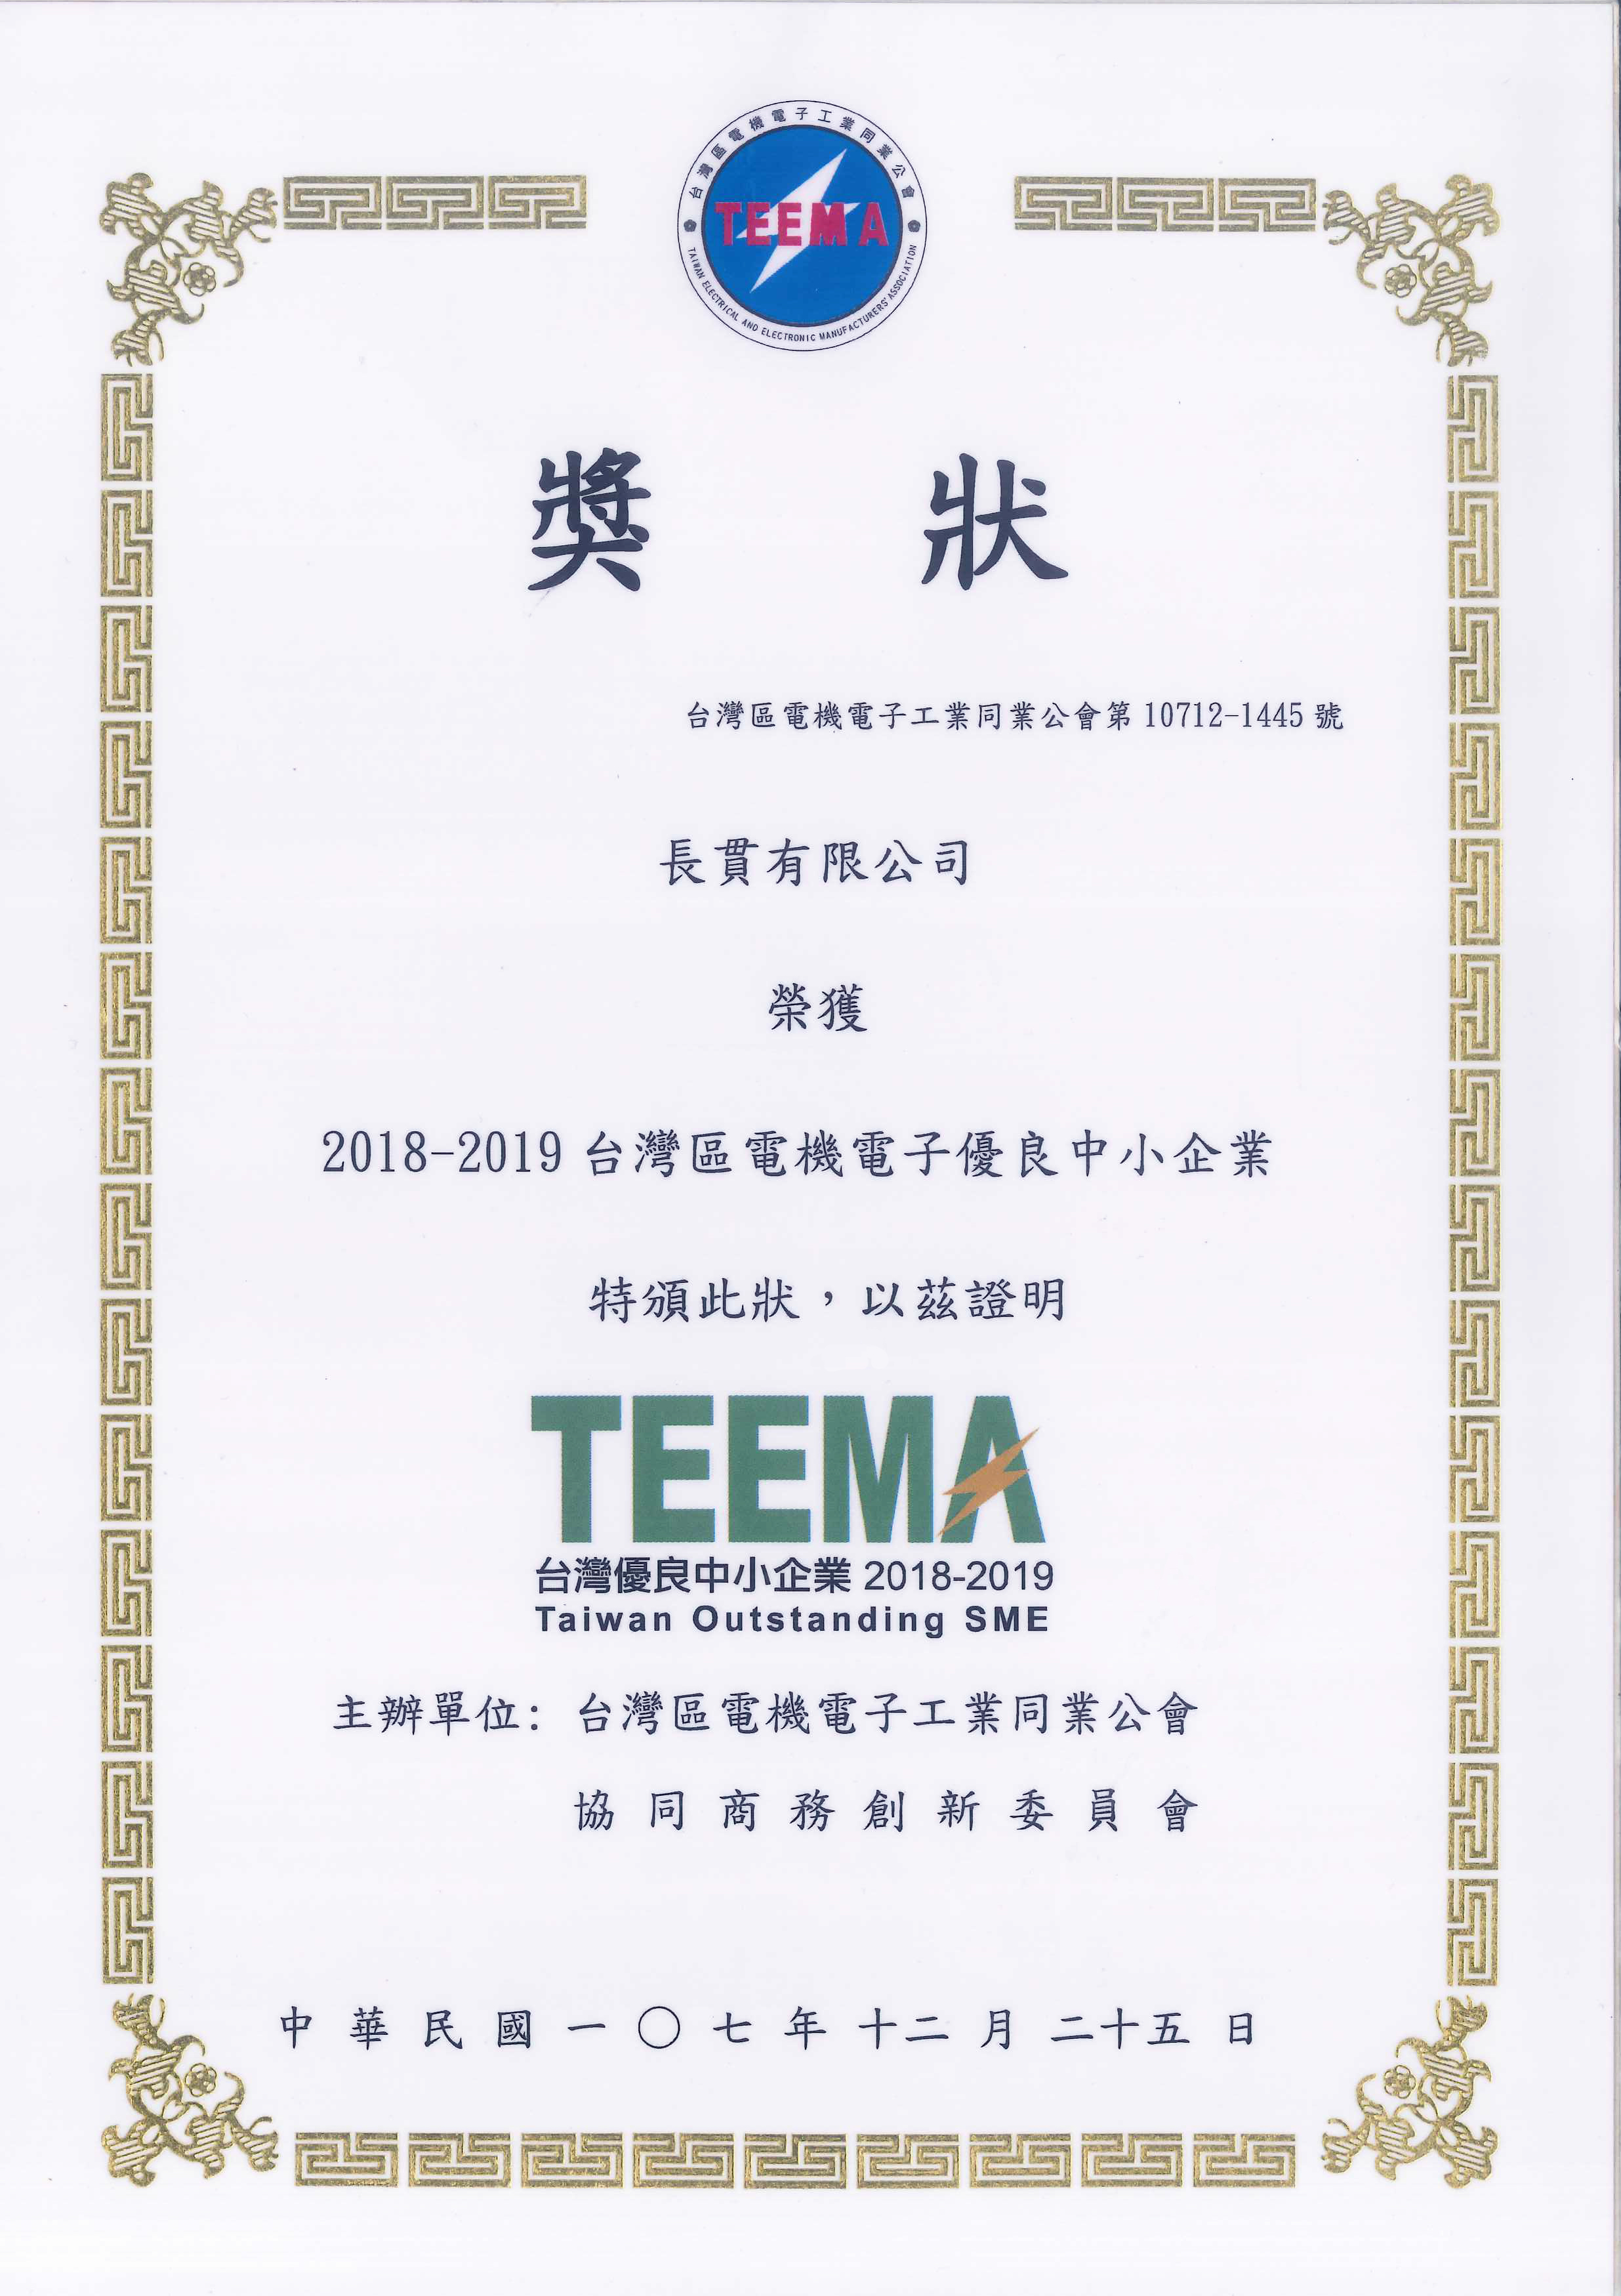 Taiwan Outstanding SME 2018-2019